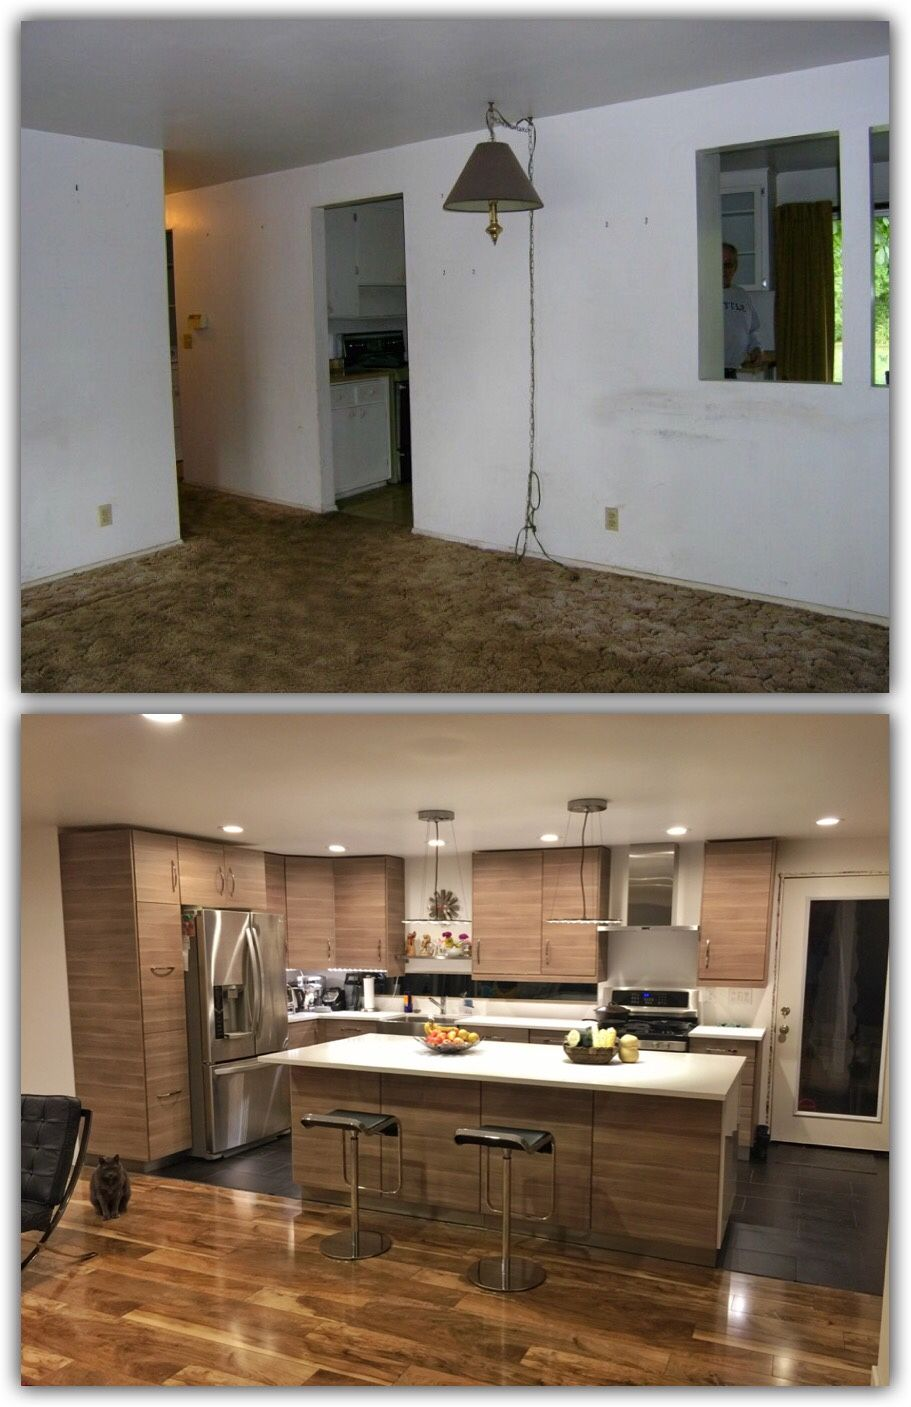 Before And After Of Our Kitchen 4 Ft By 8ft Island And 8ft Kitchen Window Under Cabinet Led Lighting With Outlet Strip Kitchen Home Remodeling Kitchen Window